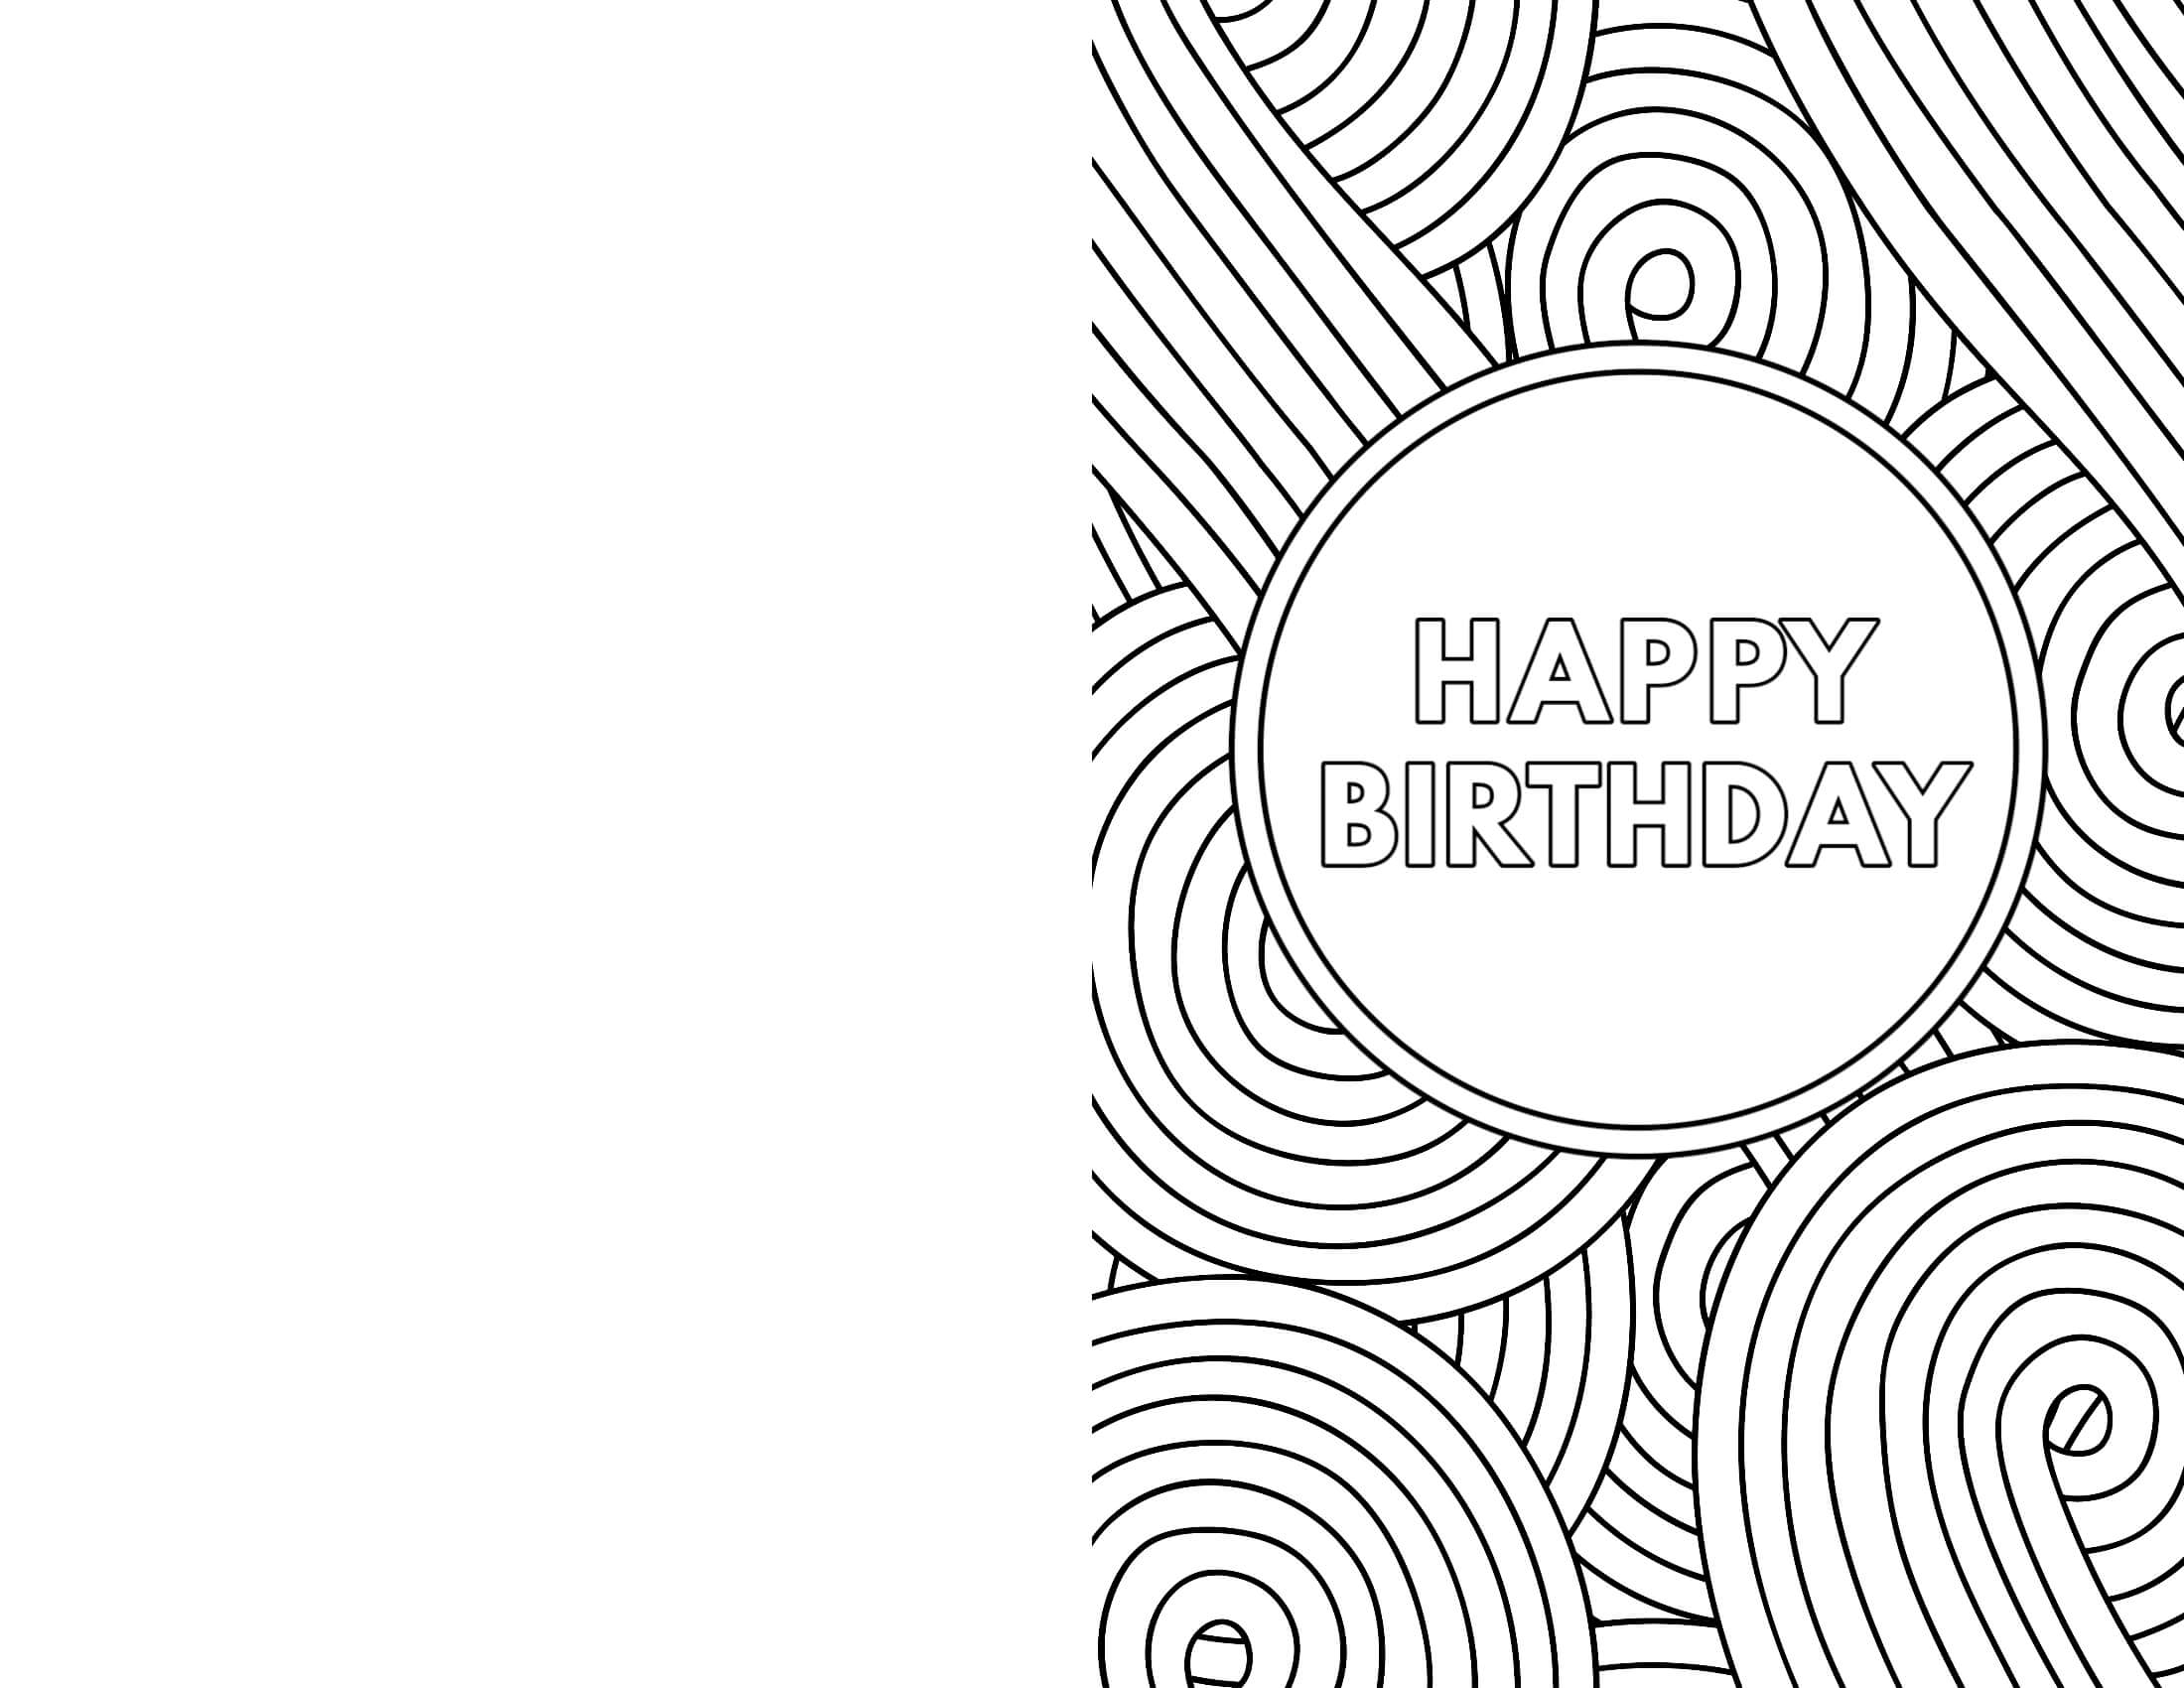 Free Printable Birthday Cards - Paper Trail Design For Foldable Birthday Card Template